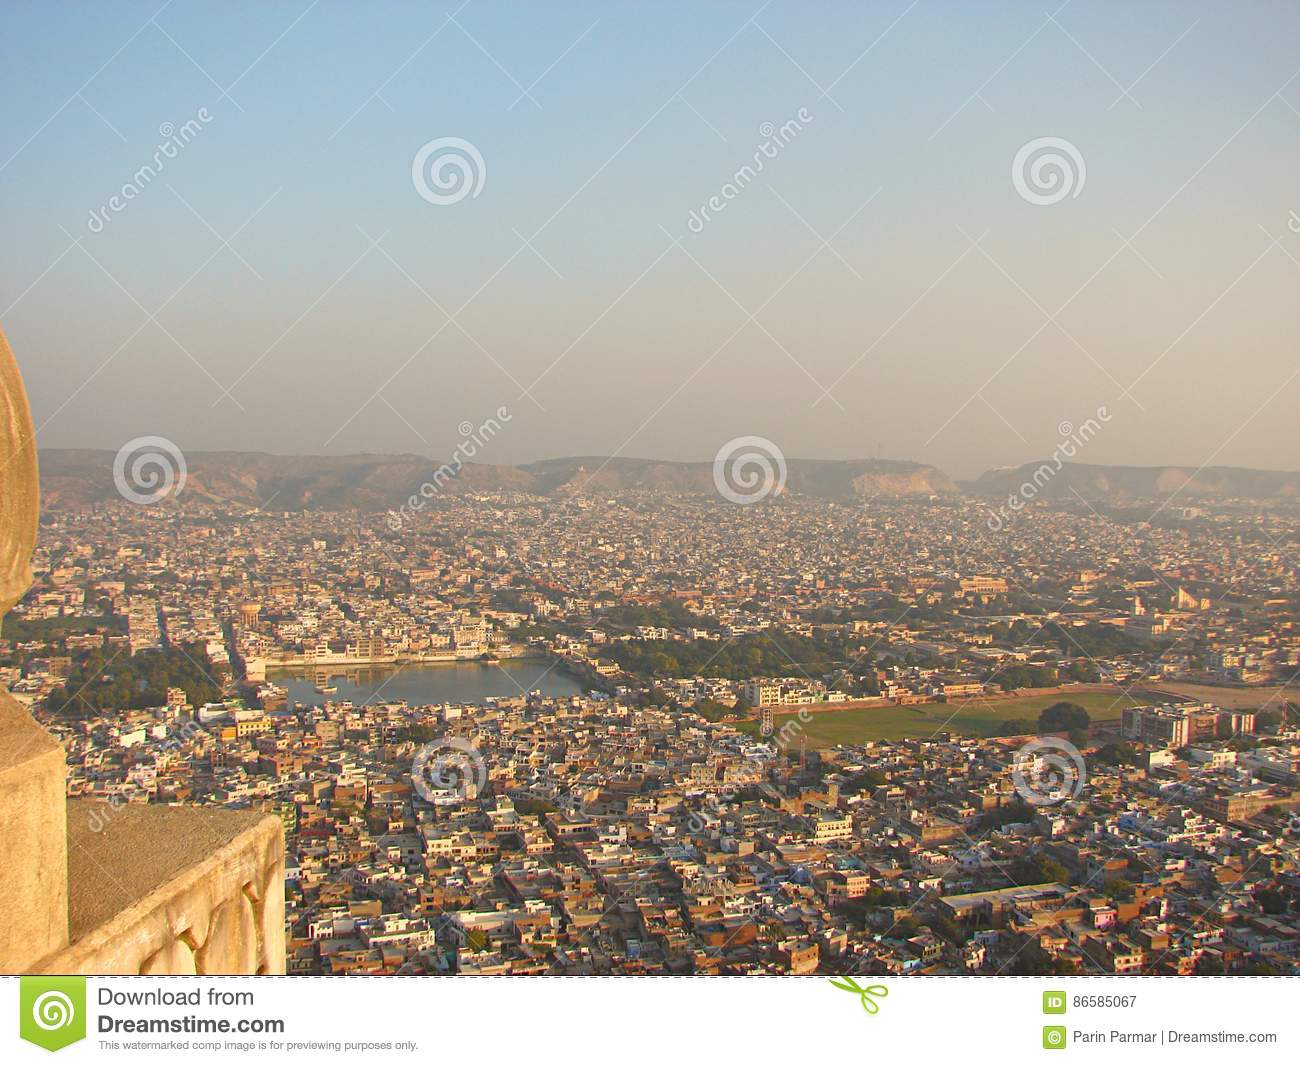 View of Jaipur City from Nahargarh Fort, Rajasthan, India